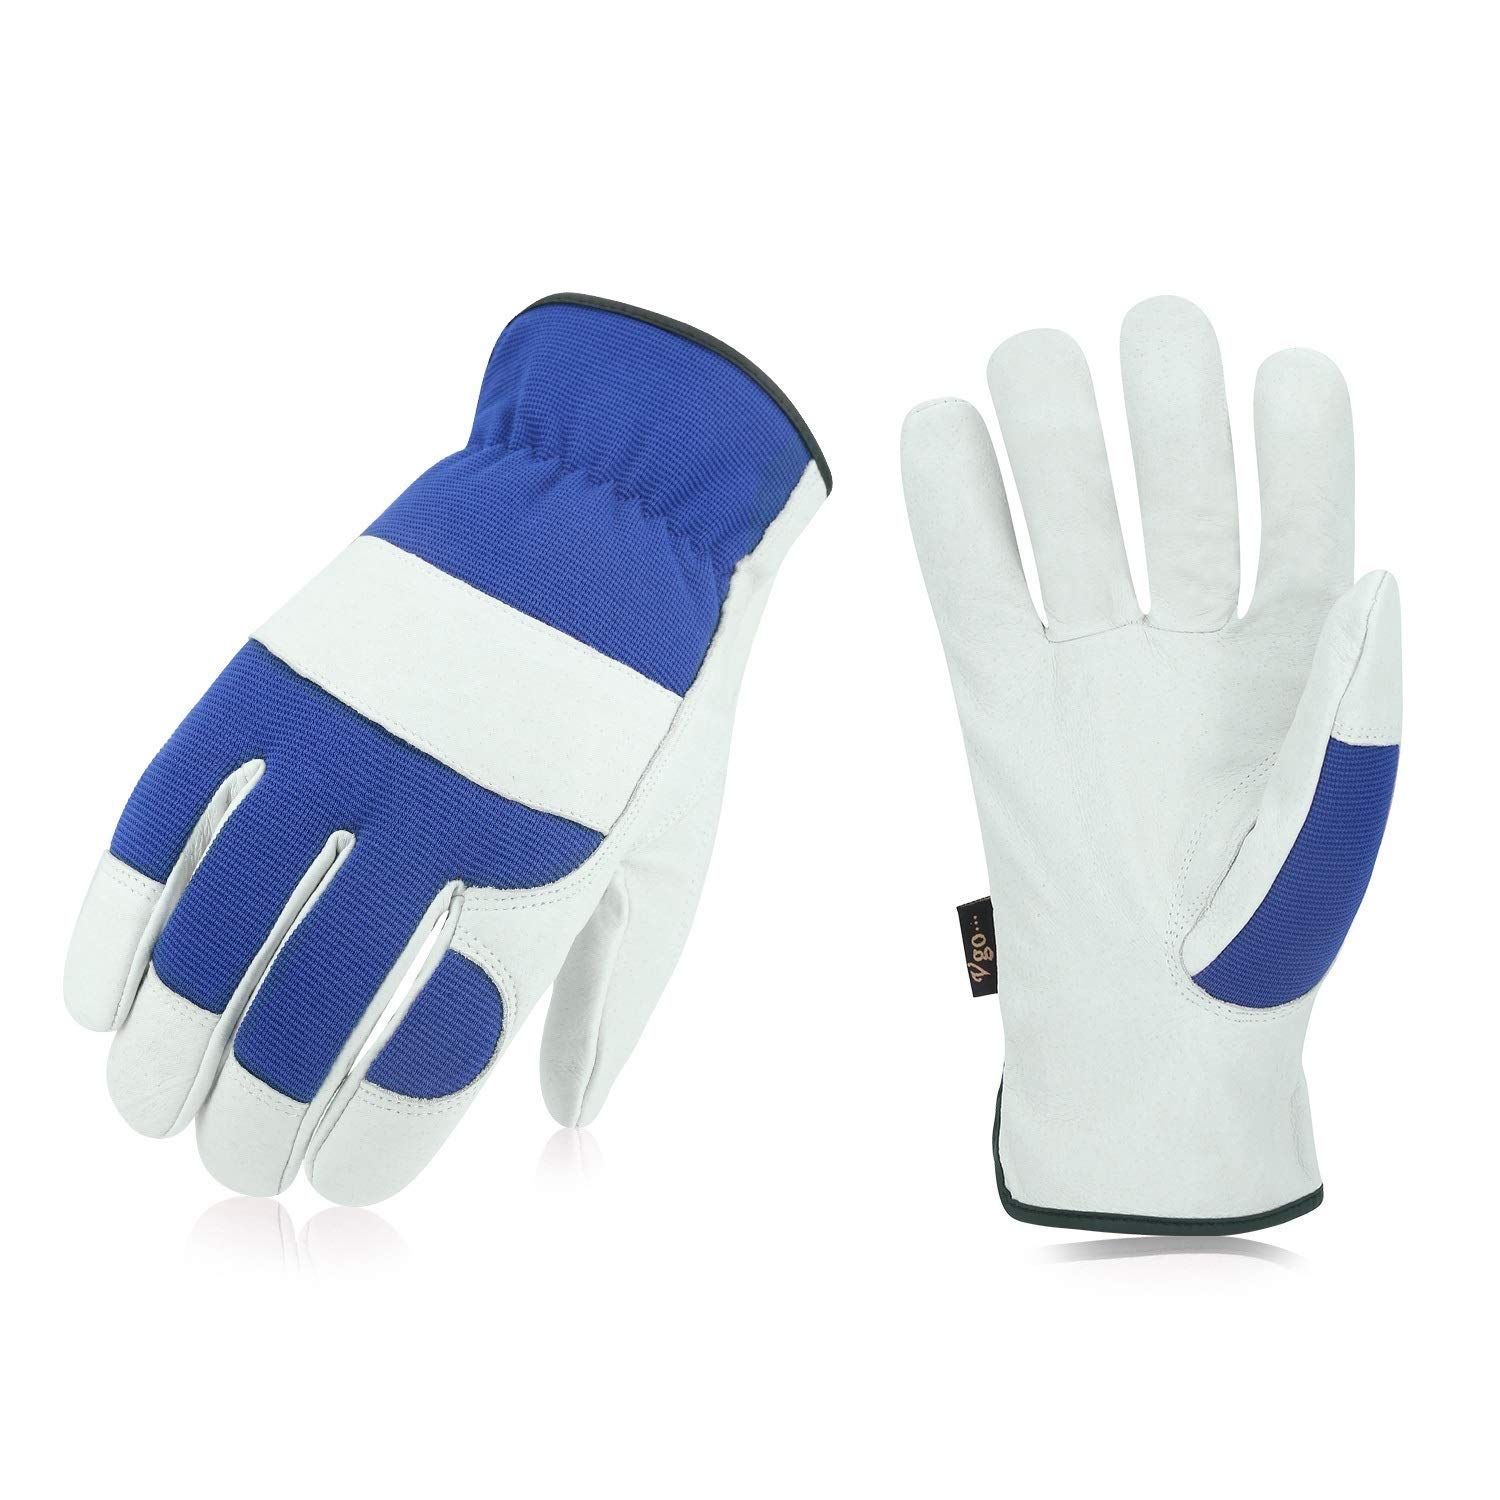 c4d0de97 Vgo 3 Pairs Pigskin Leather Construction Protective Work Gloves, Driver  Gloves, Garden Gloves, Multifunction (Size 9/L, White, PA7226): Amazon.co.uk:  DIY & ...